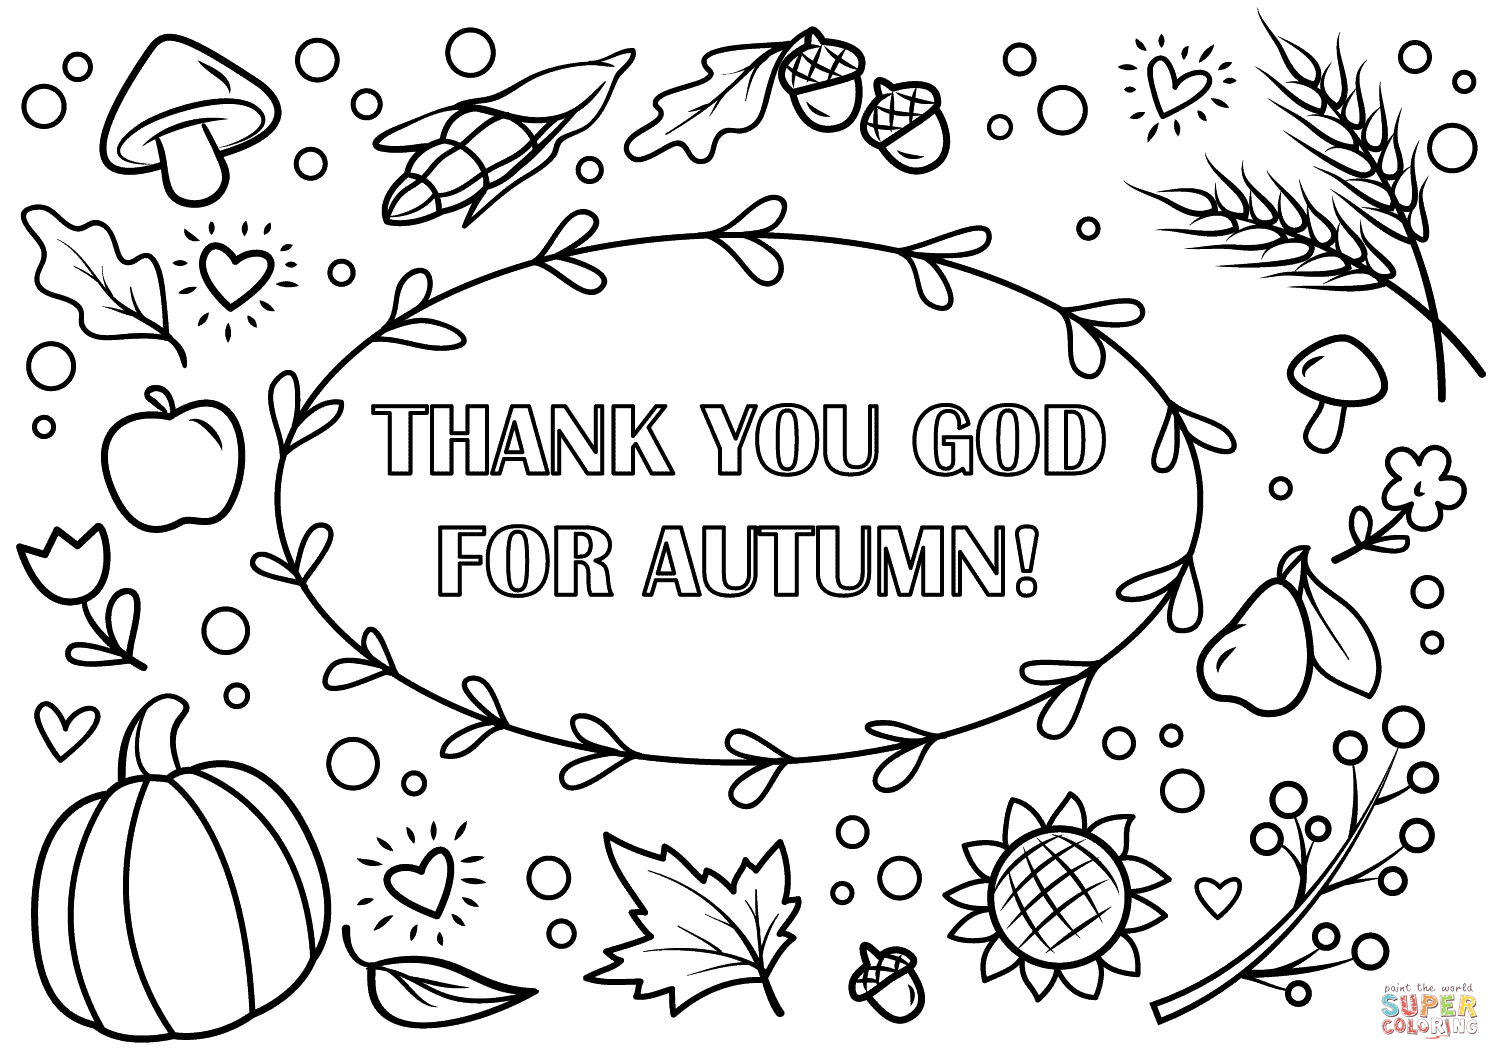 Thank You God For Autumn! Coloring Page